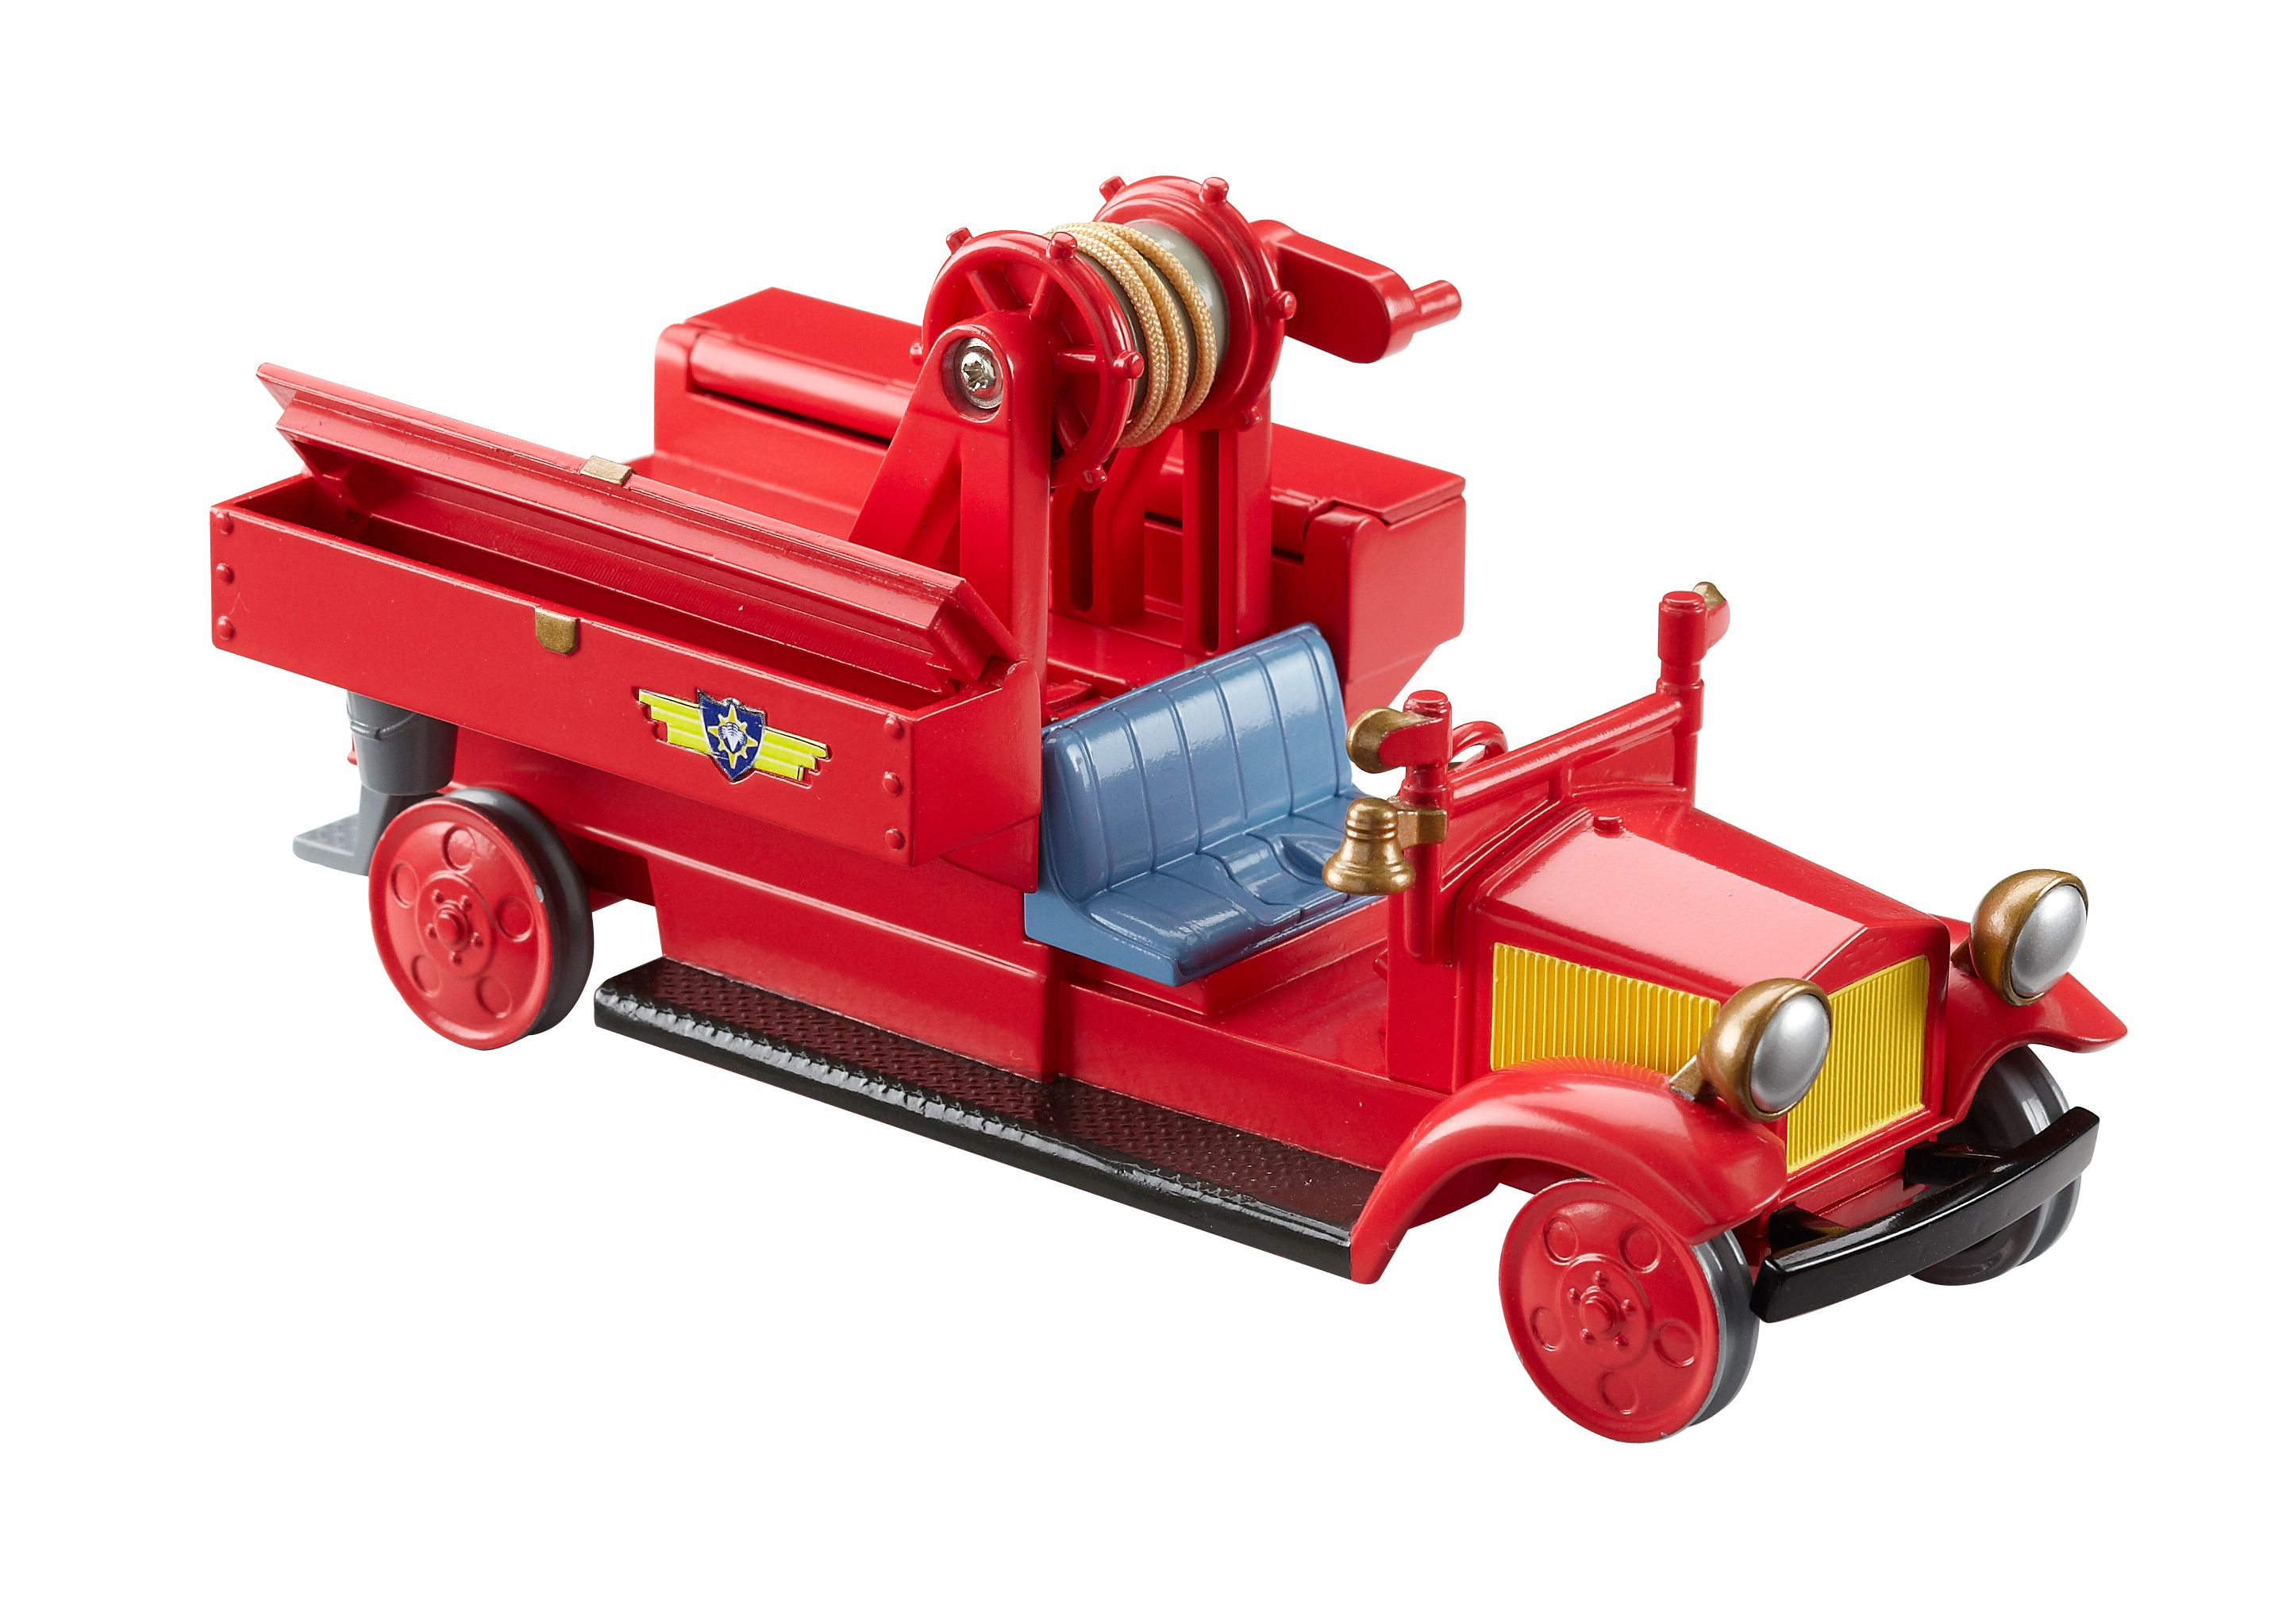 Vehicle and Accessory Set - Bessie